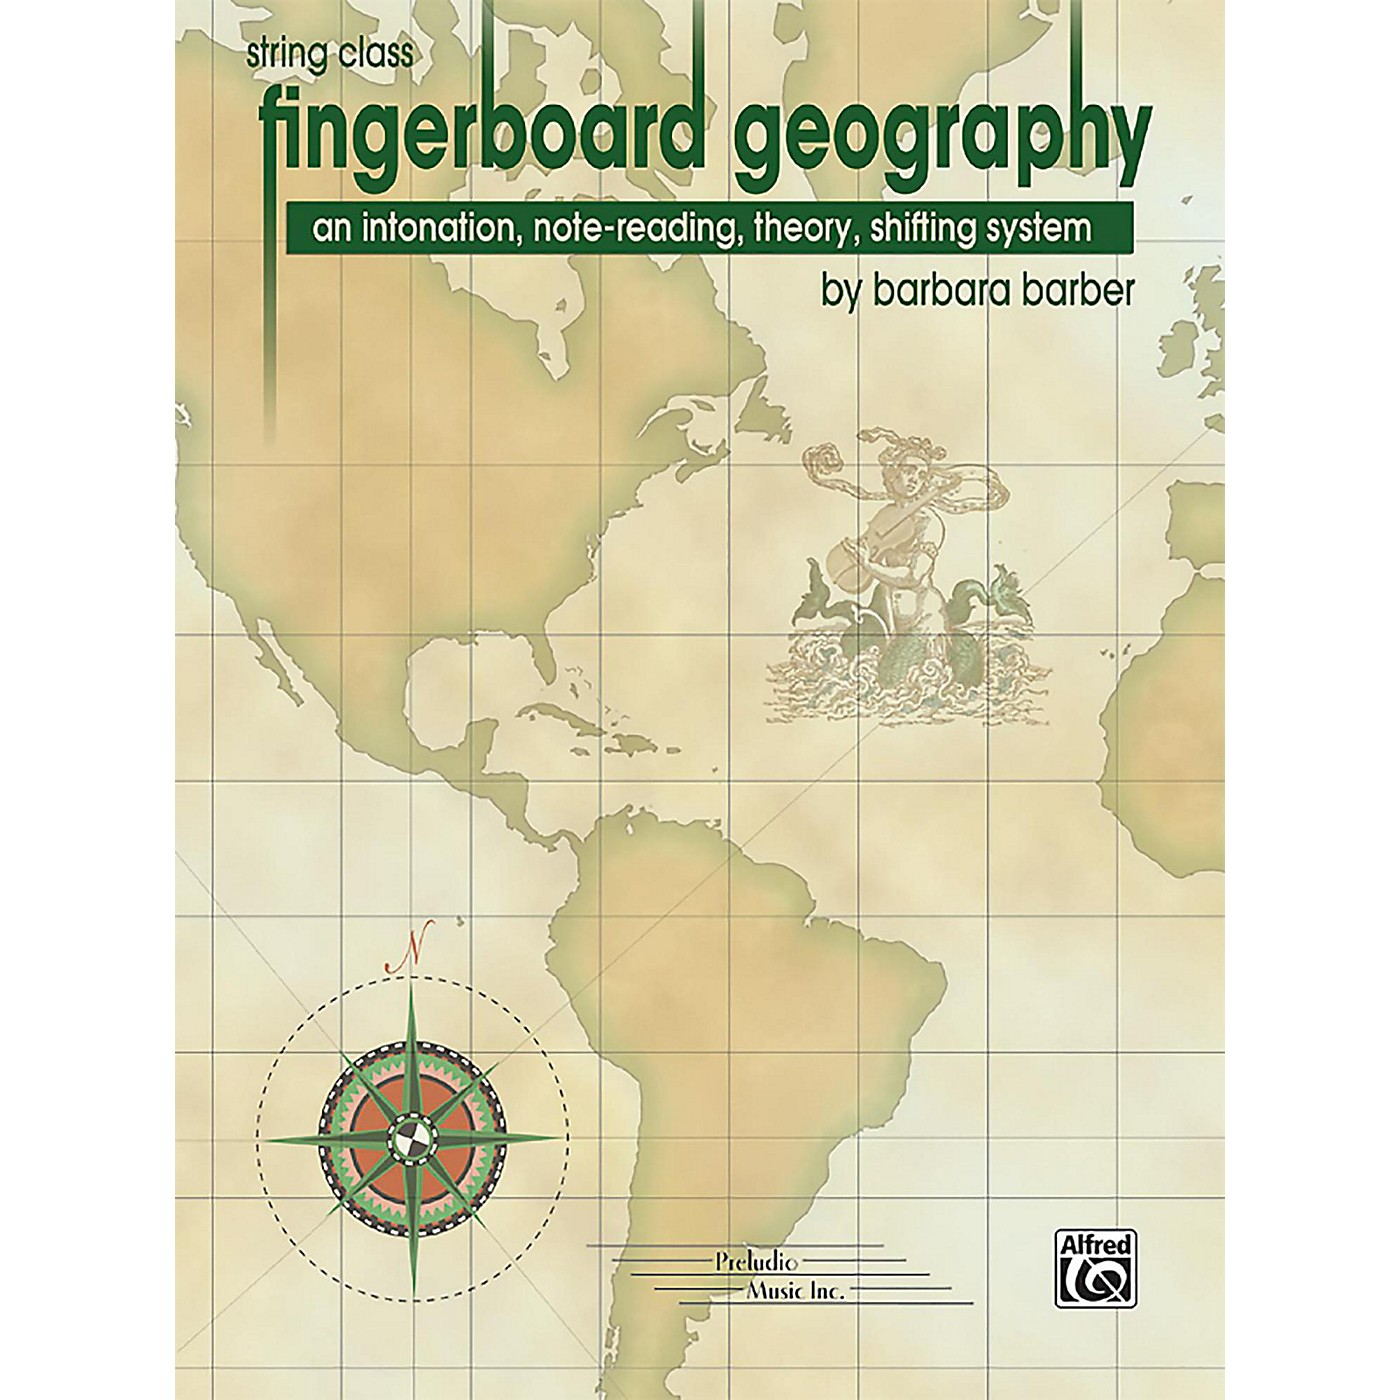 PRELUDIO Fingerboard Geography for the String Class (For Violin, Viola, Cello, and Bass) thumbnail